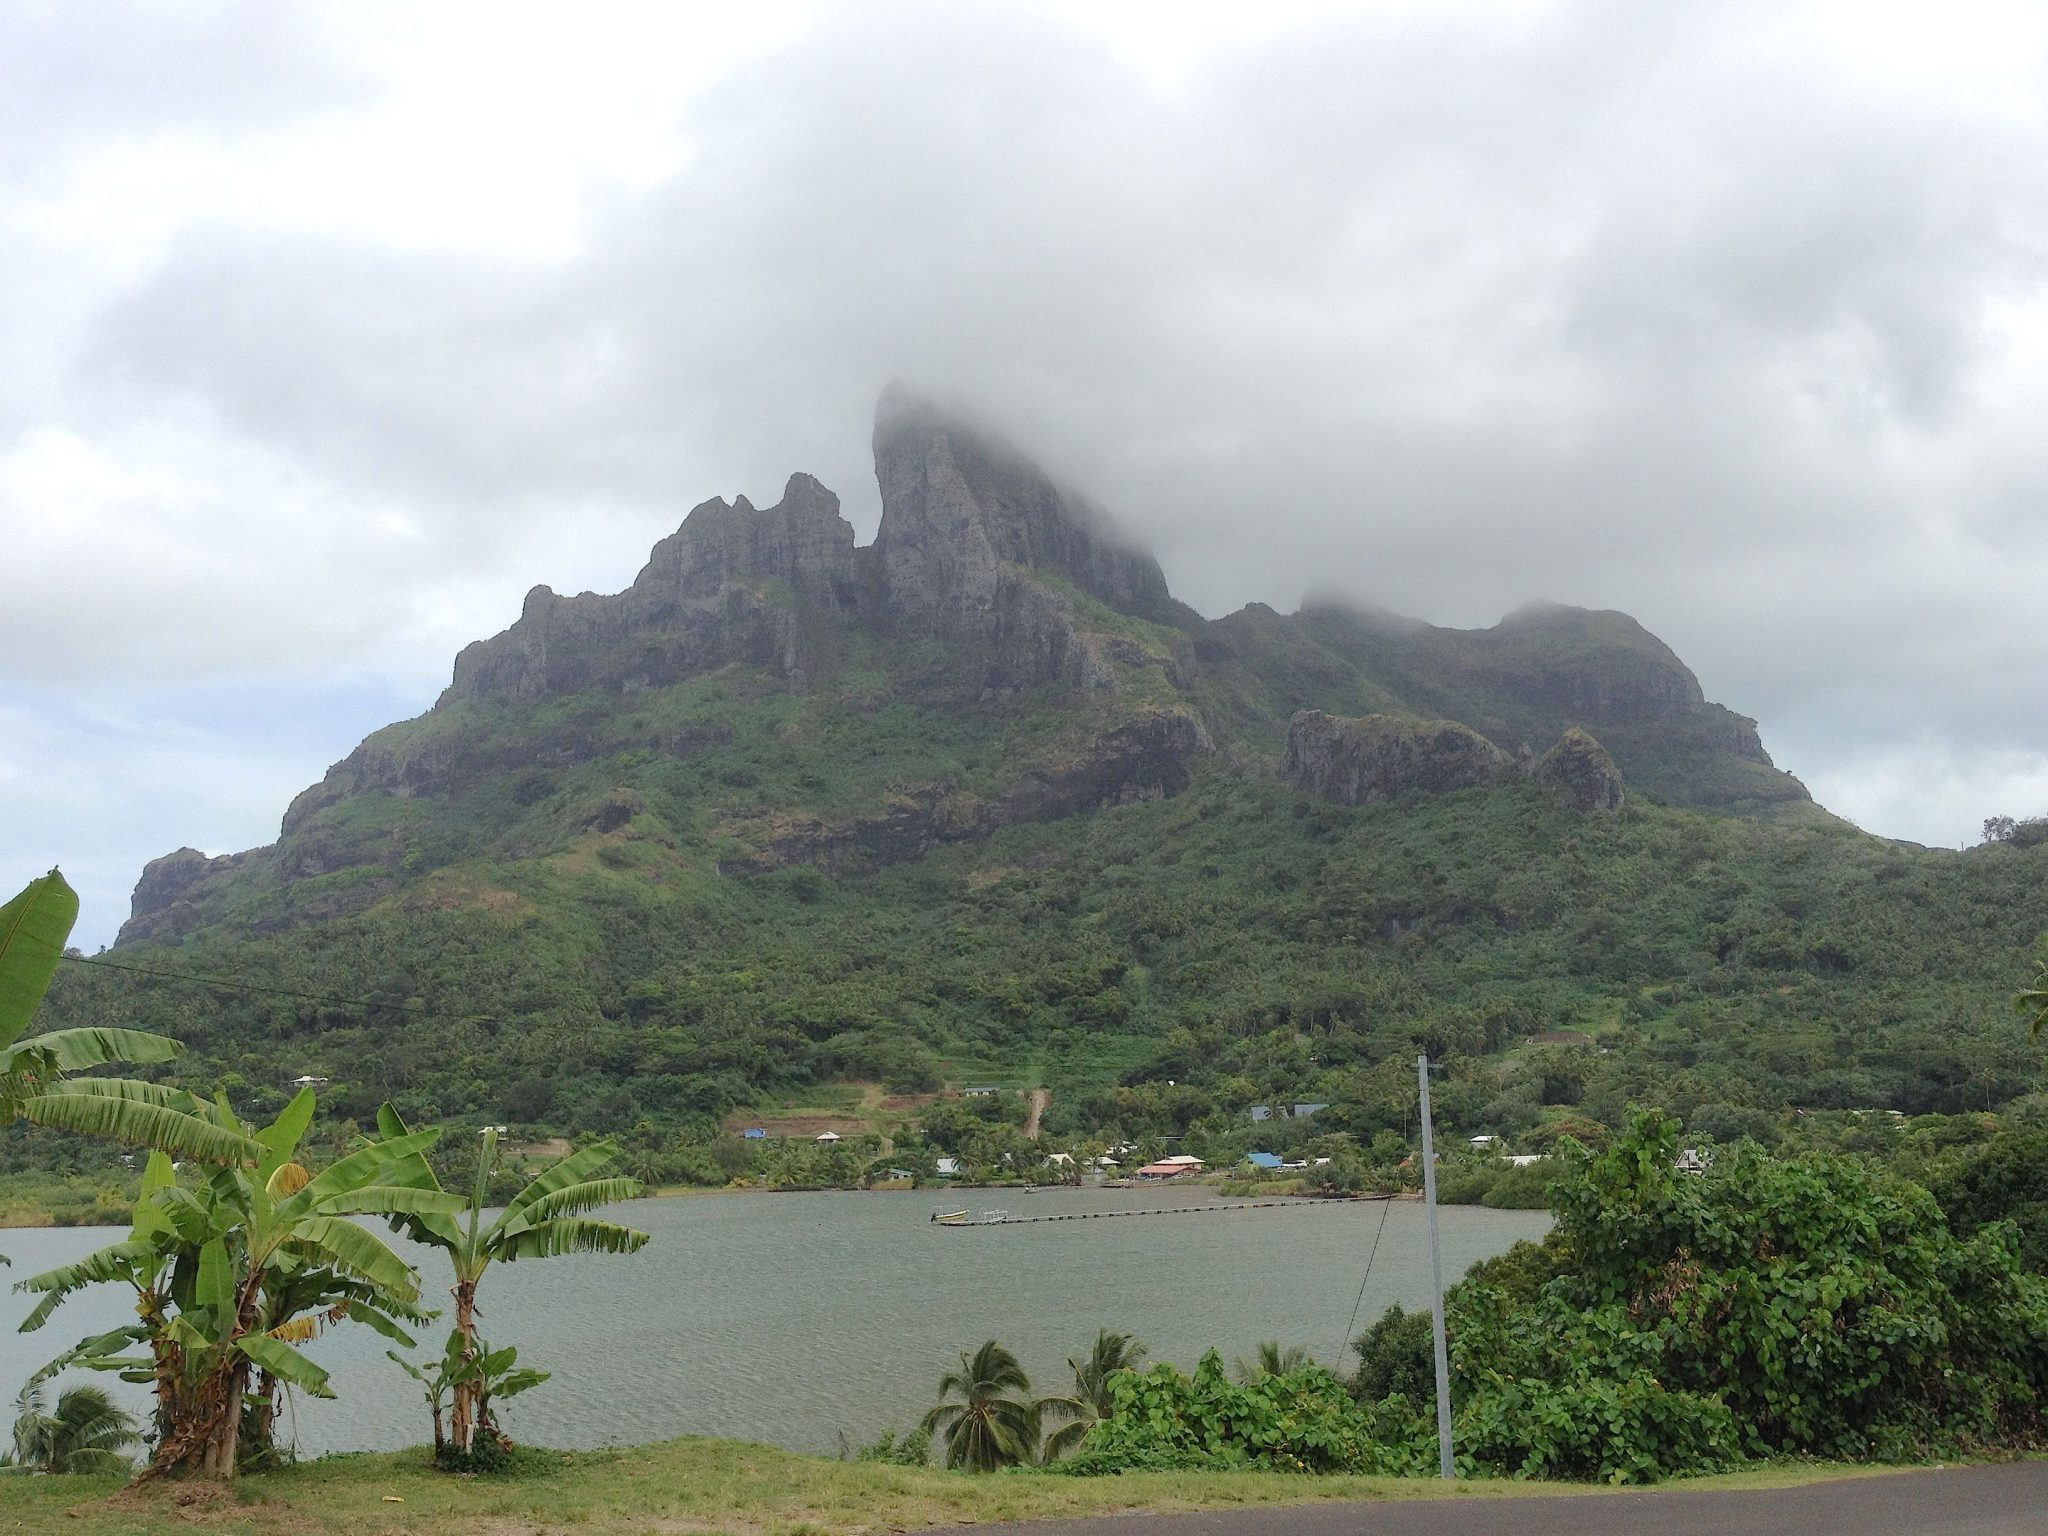 22. Bora Bora's Mt. Otemanu was shrouded in the afternoon rain clouds viewed from the north east